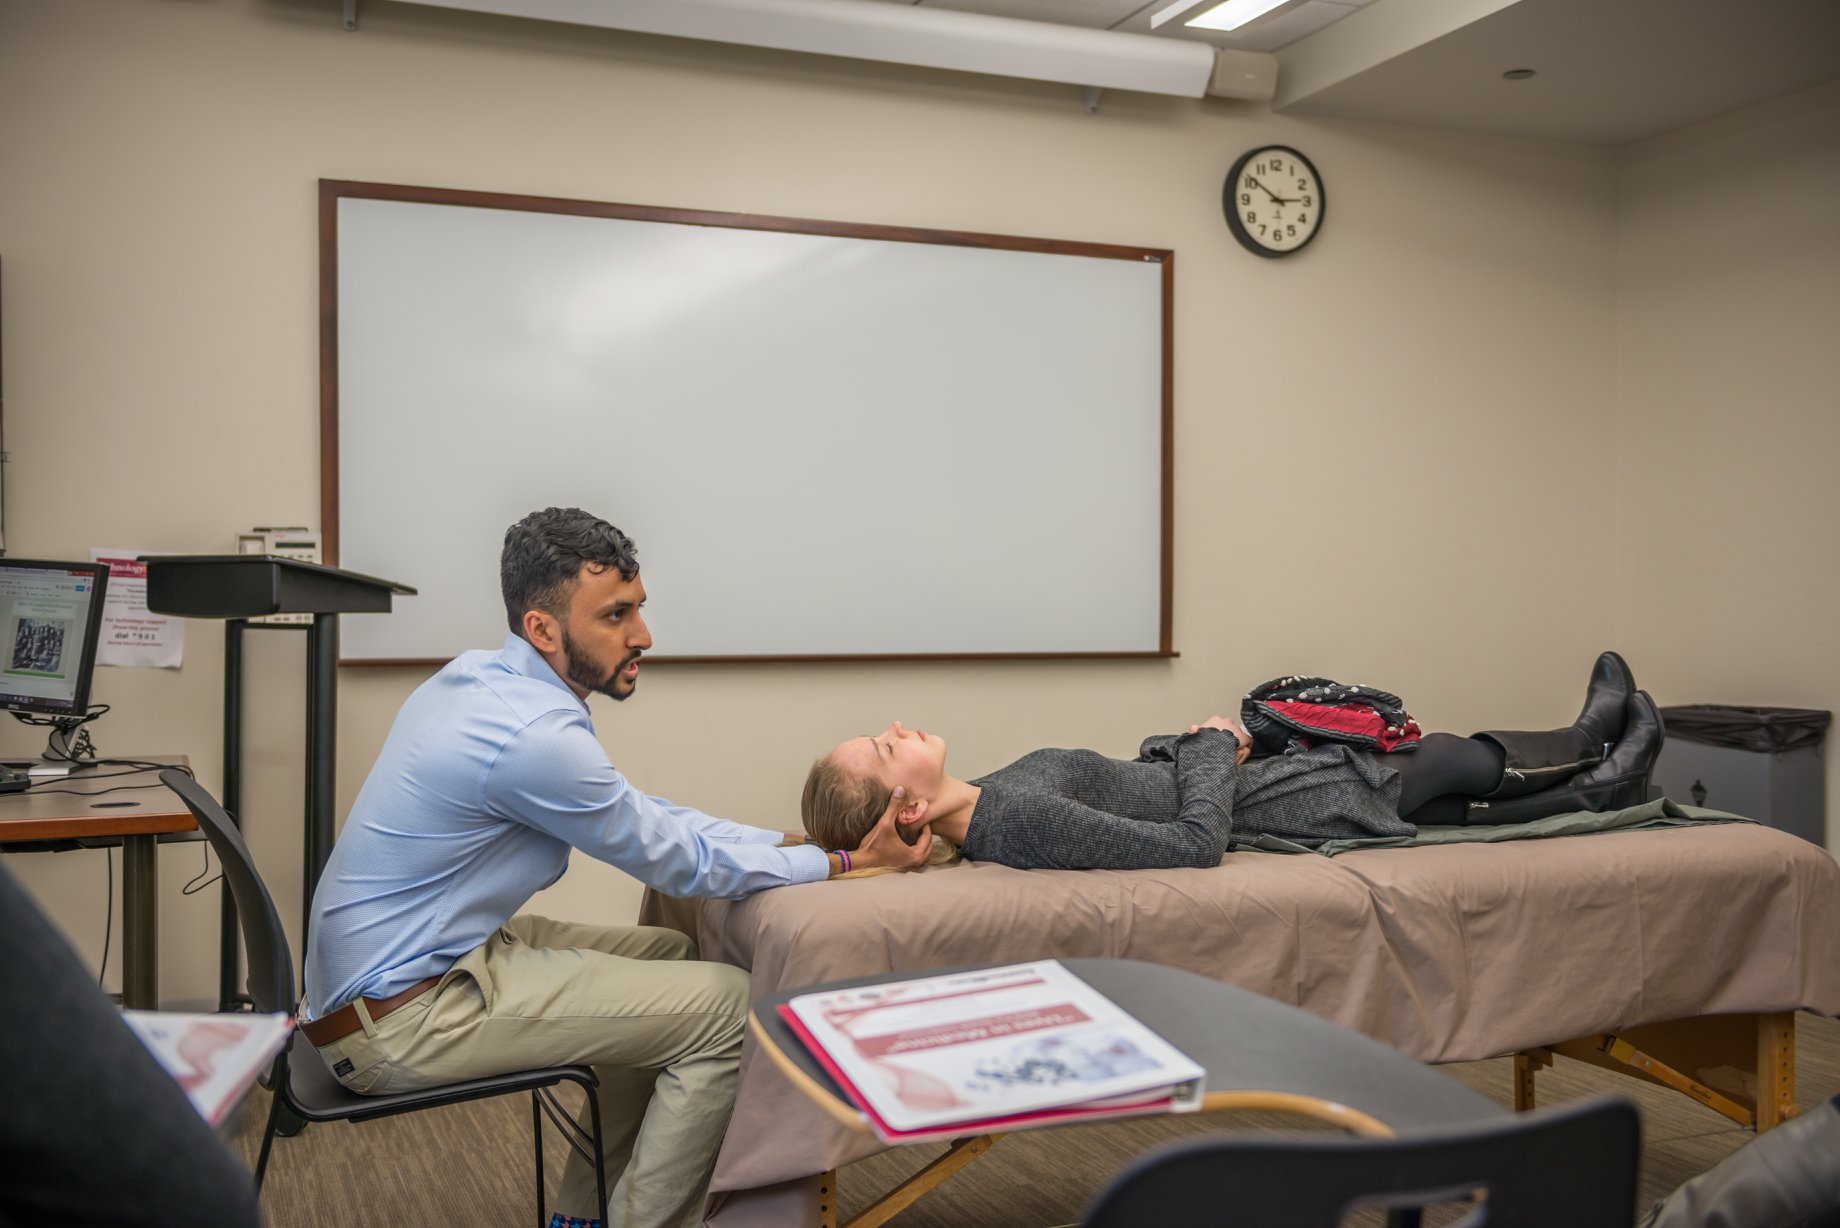 Gurjit Saini represented Chicago College of Osteopathic Medicine introduced prospective pre-health students to what it means to be an osteopathic physician.